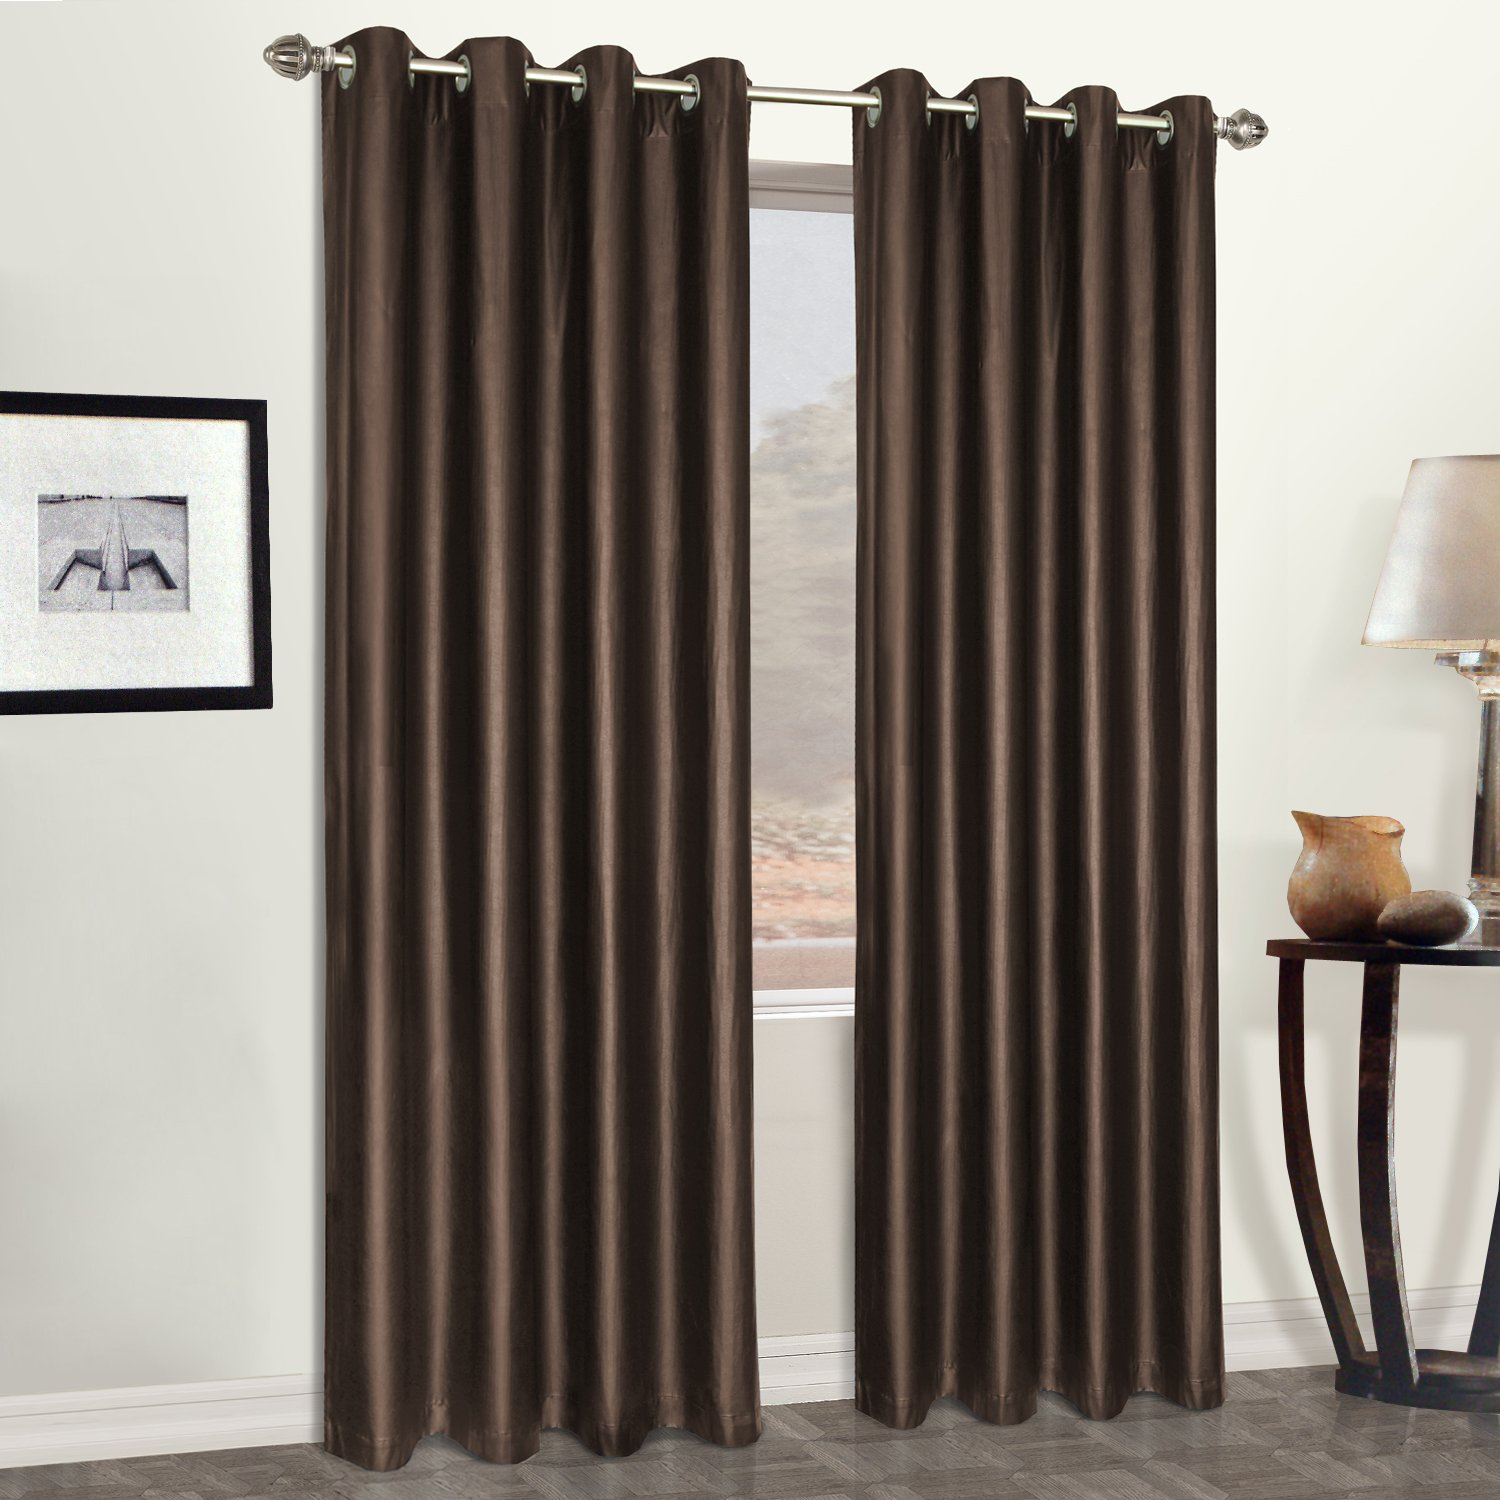 floral full valances panels contemporary panel window curtains arched satin fascinate drapery with drapes gingham drape endearing set curtain behind for and size chocolate austrian magnificent of kitchen net heavy cool sheer large country piece au inches entertain valance